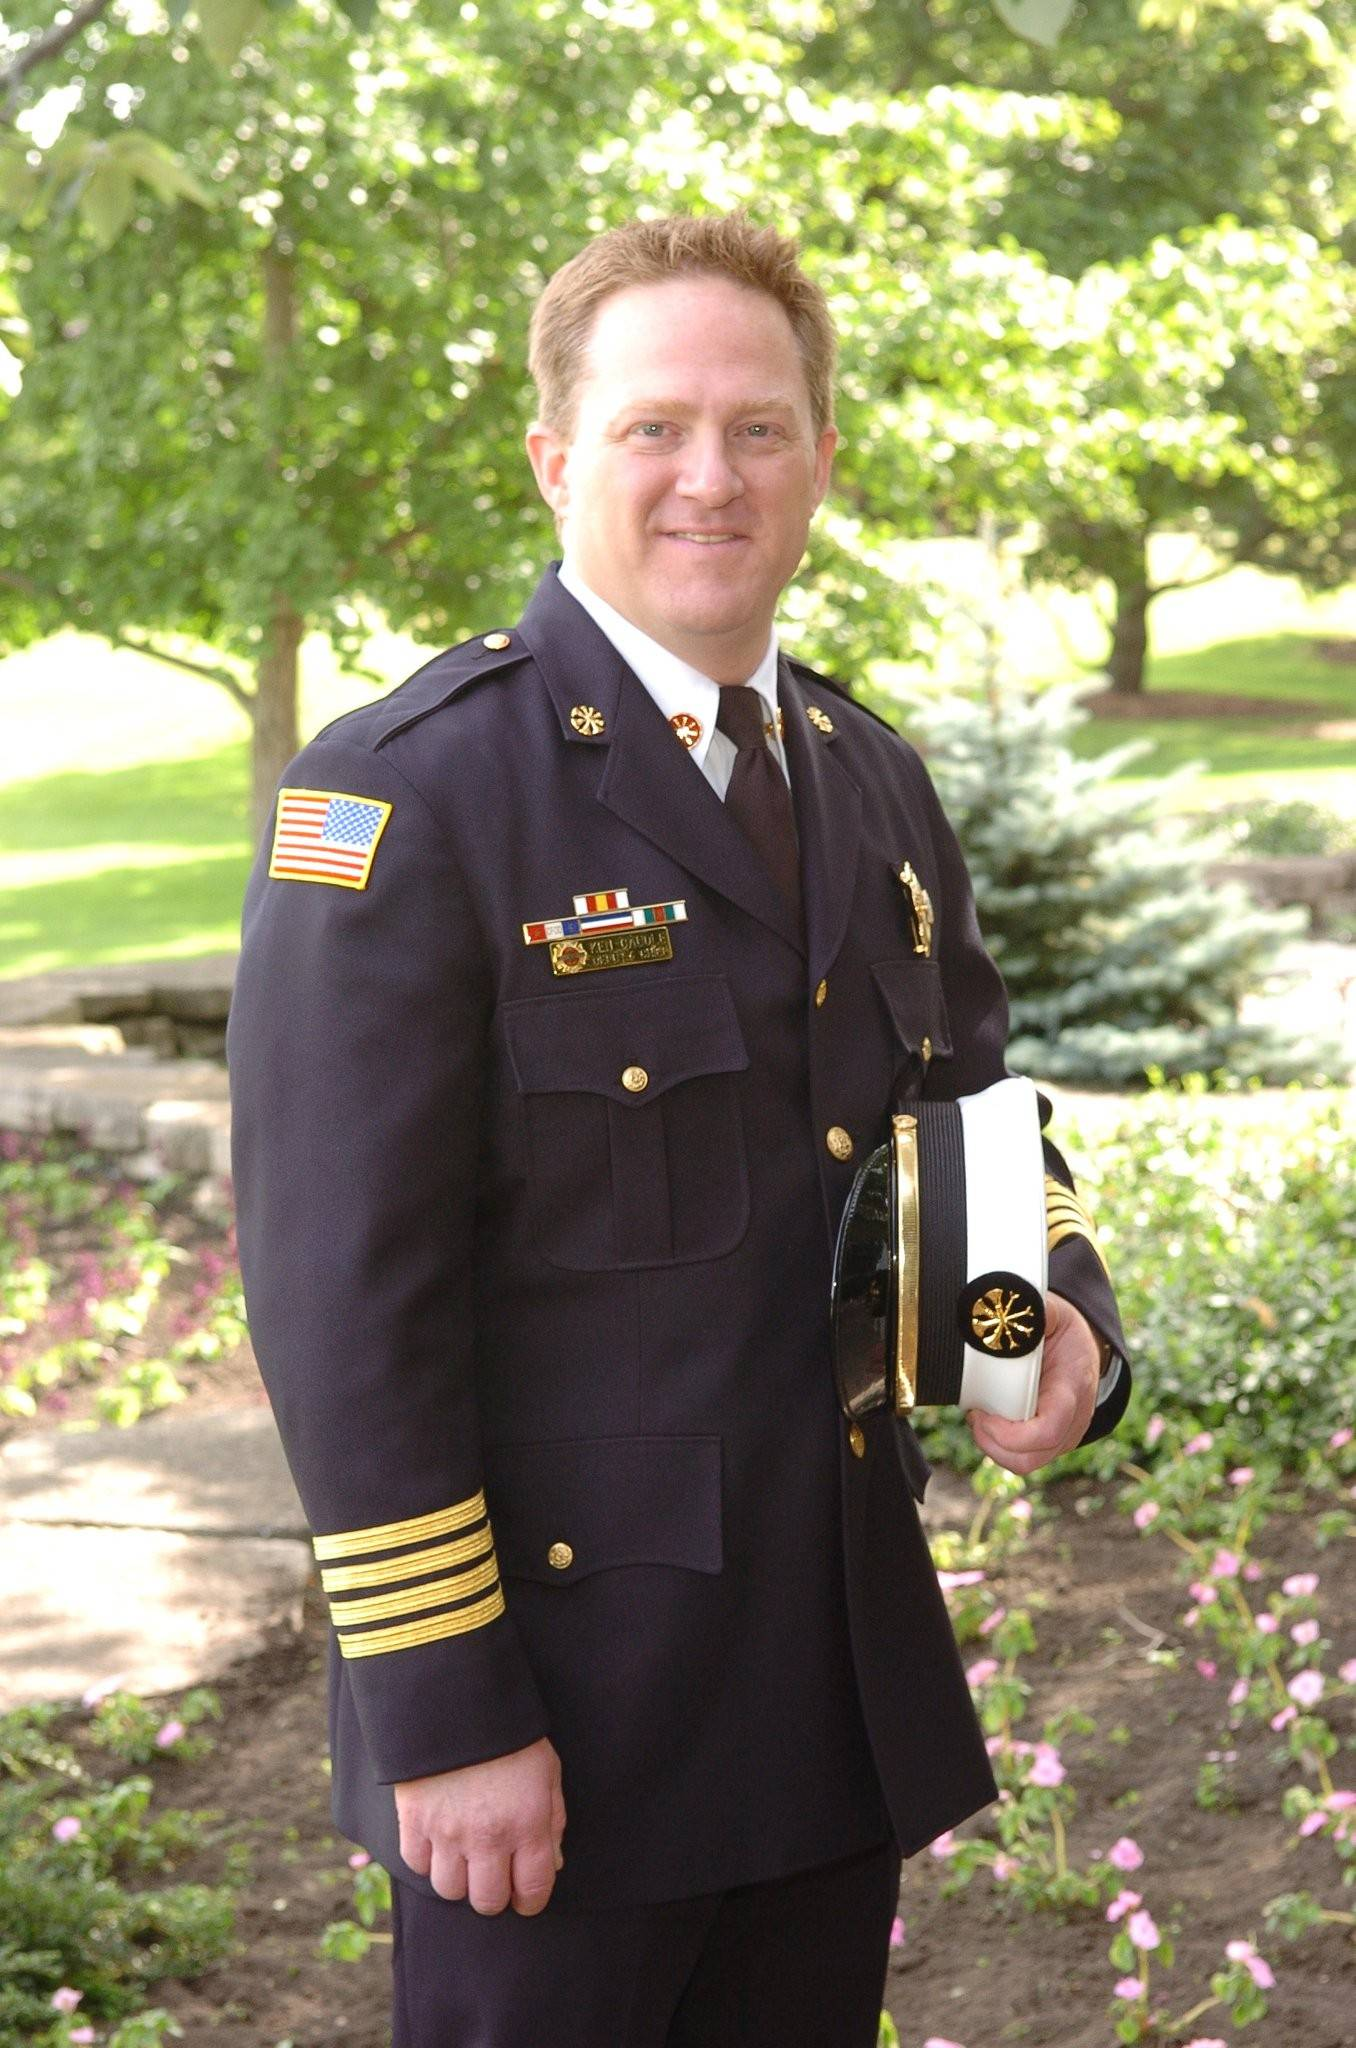 Huntley Fire Protection District Chief Ken Caudle has resigned. He has been replaced with Deputy Chief Scott Ravagnie who was appointed acting chief this week.